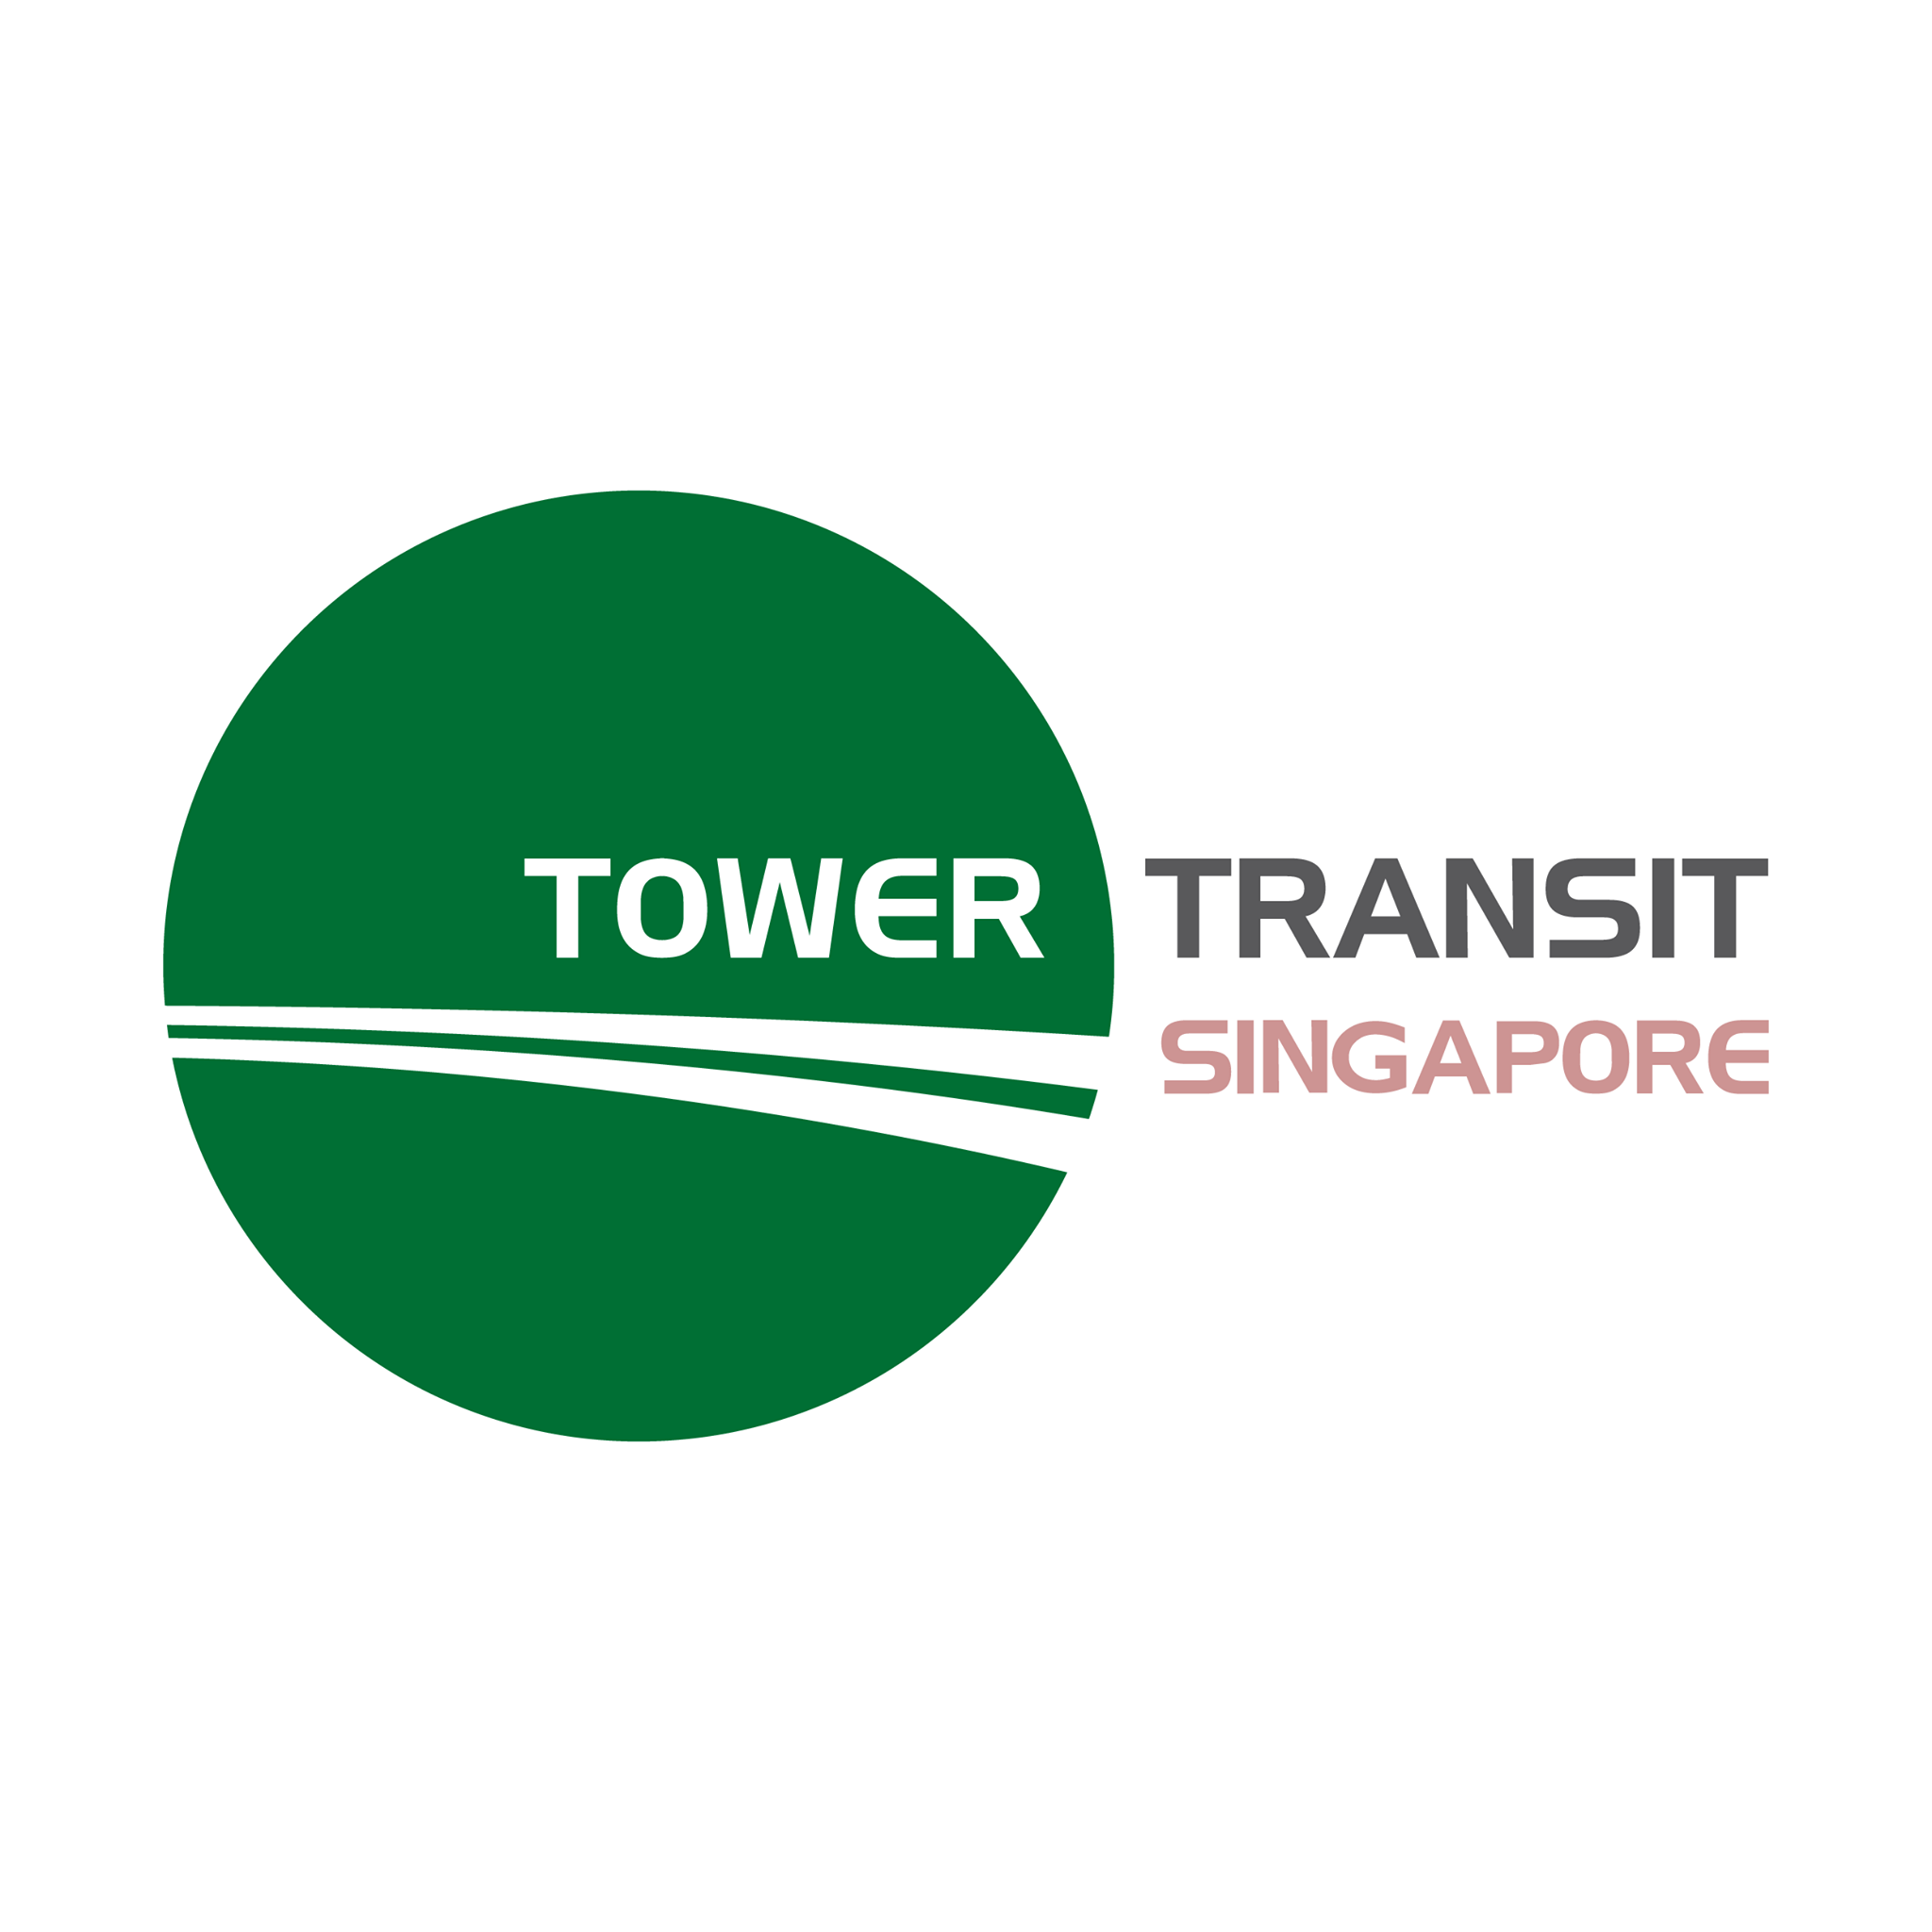 Tower Transit Singapore